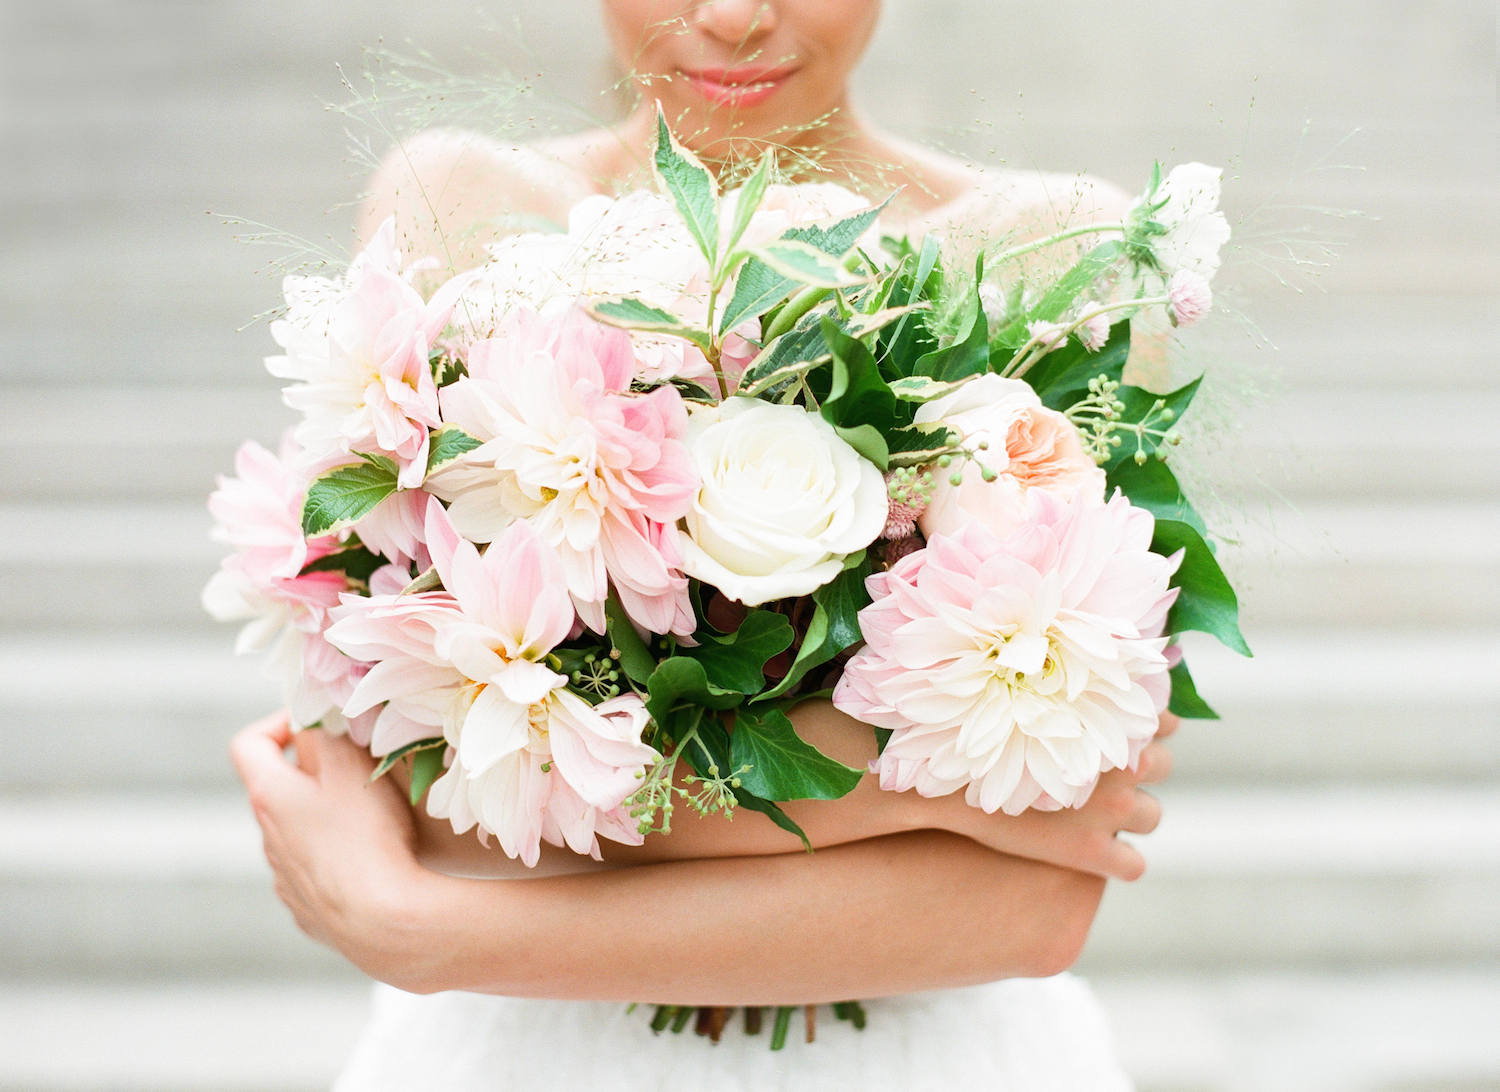 The Flower Bride- NYC Shoot- Lindsay Madden Photography-19 Full Aperture Floral copy.jpg